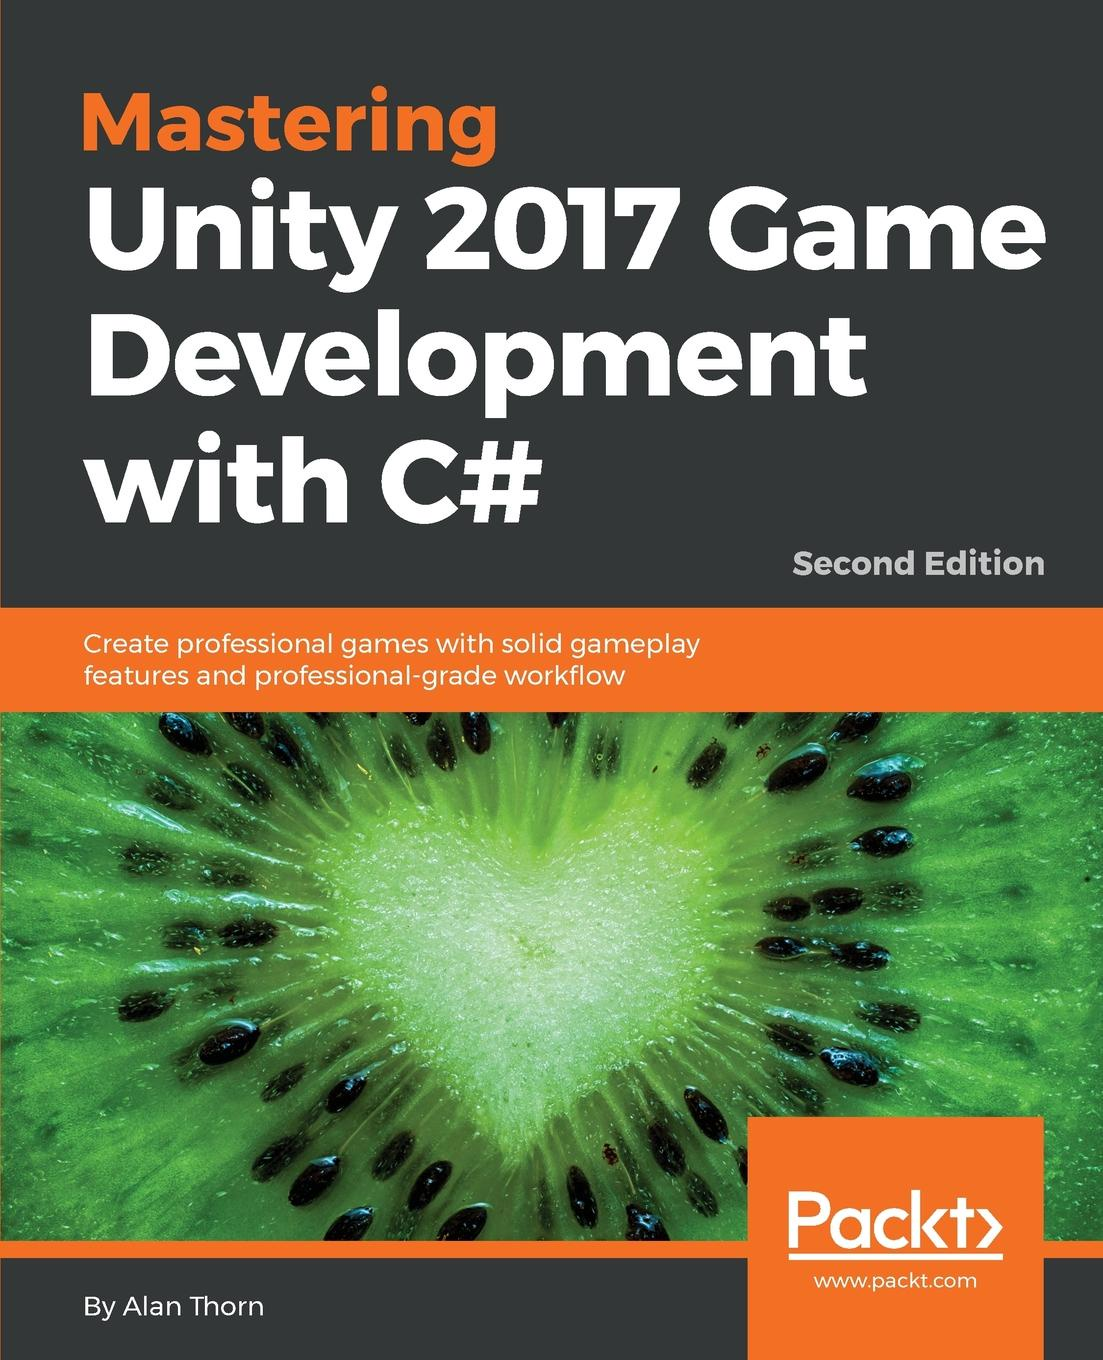 Alan Thorn Mastering Unity 2017 Game Development with C# - Second Edition miguel dequadros mastering ios game development